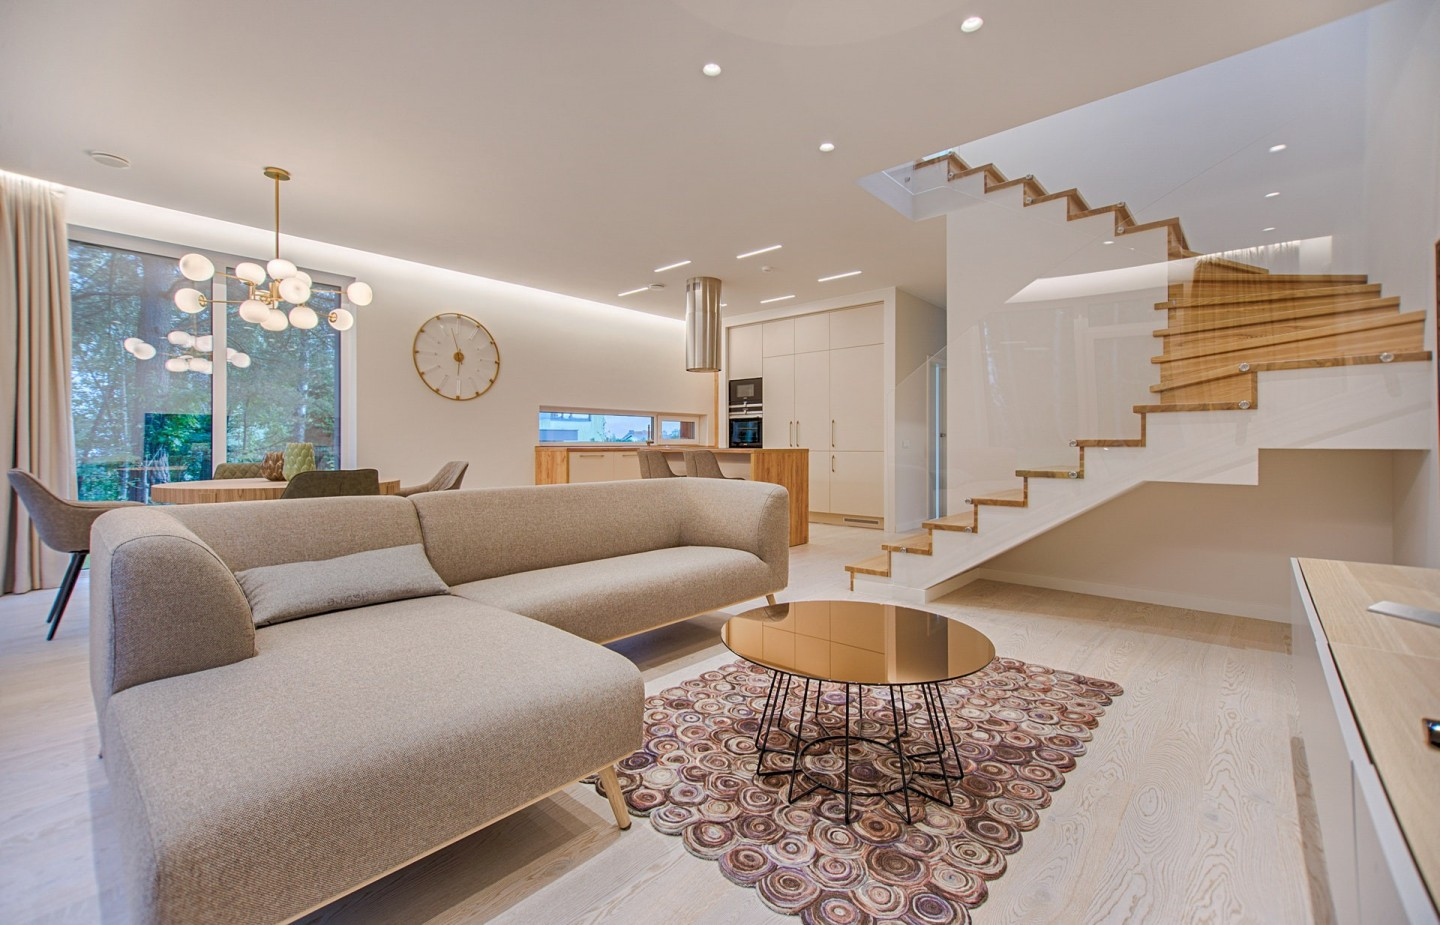 What Services Does a Villa Interior Design Company Offer